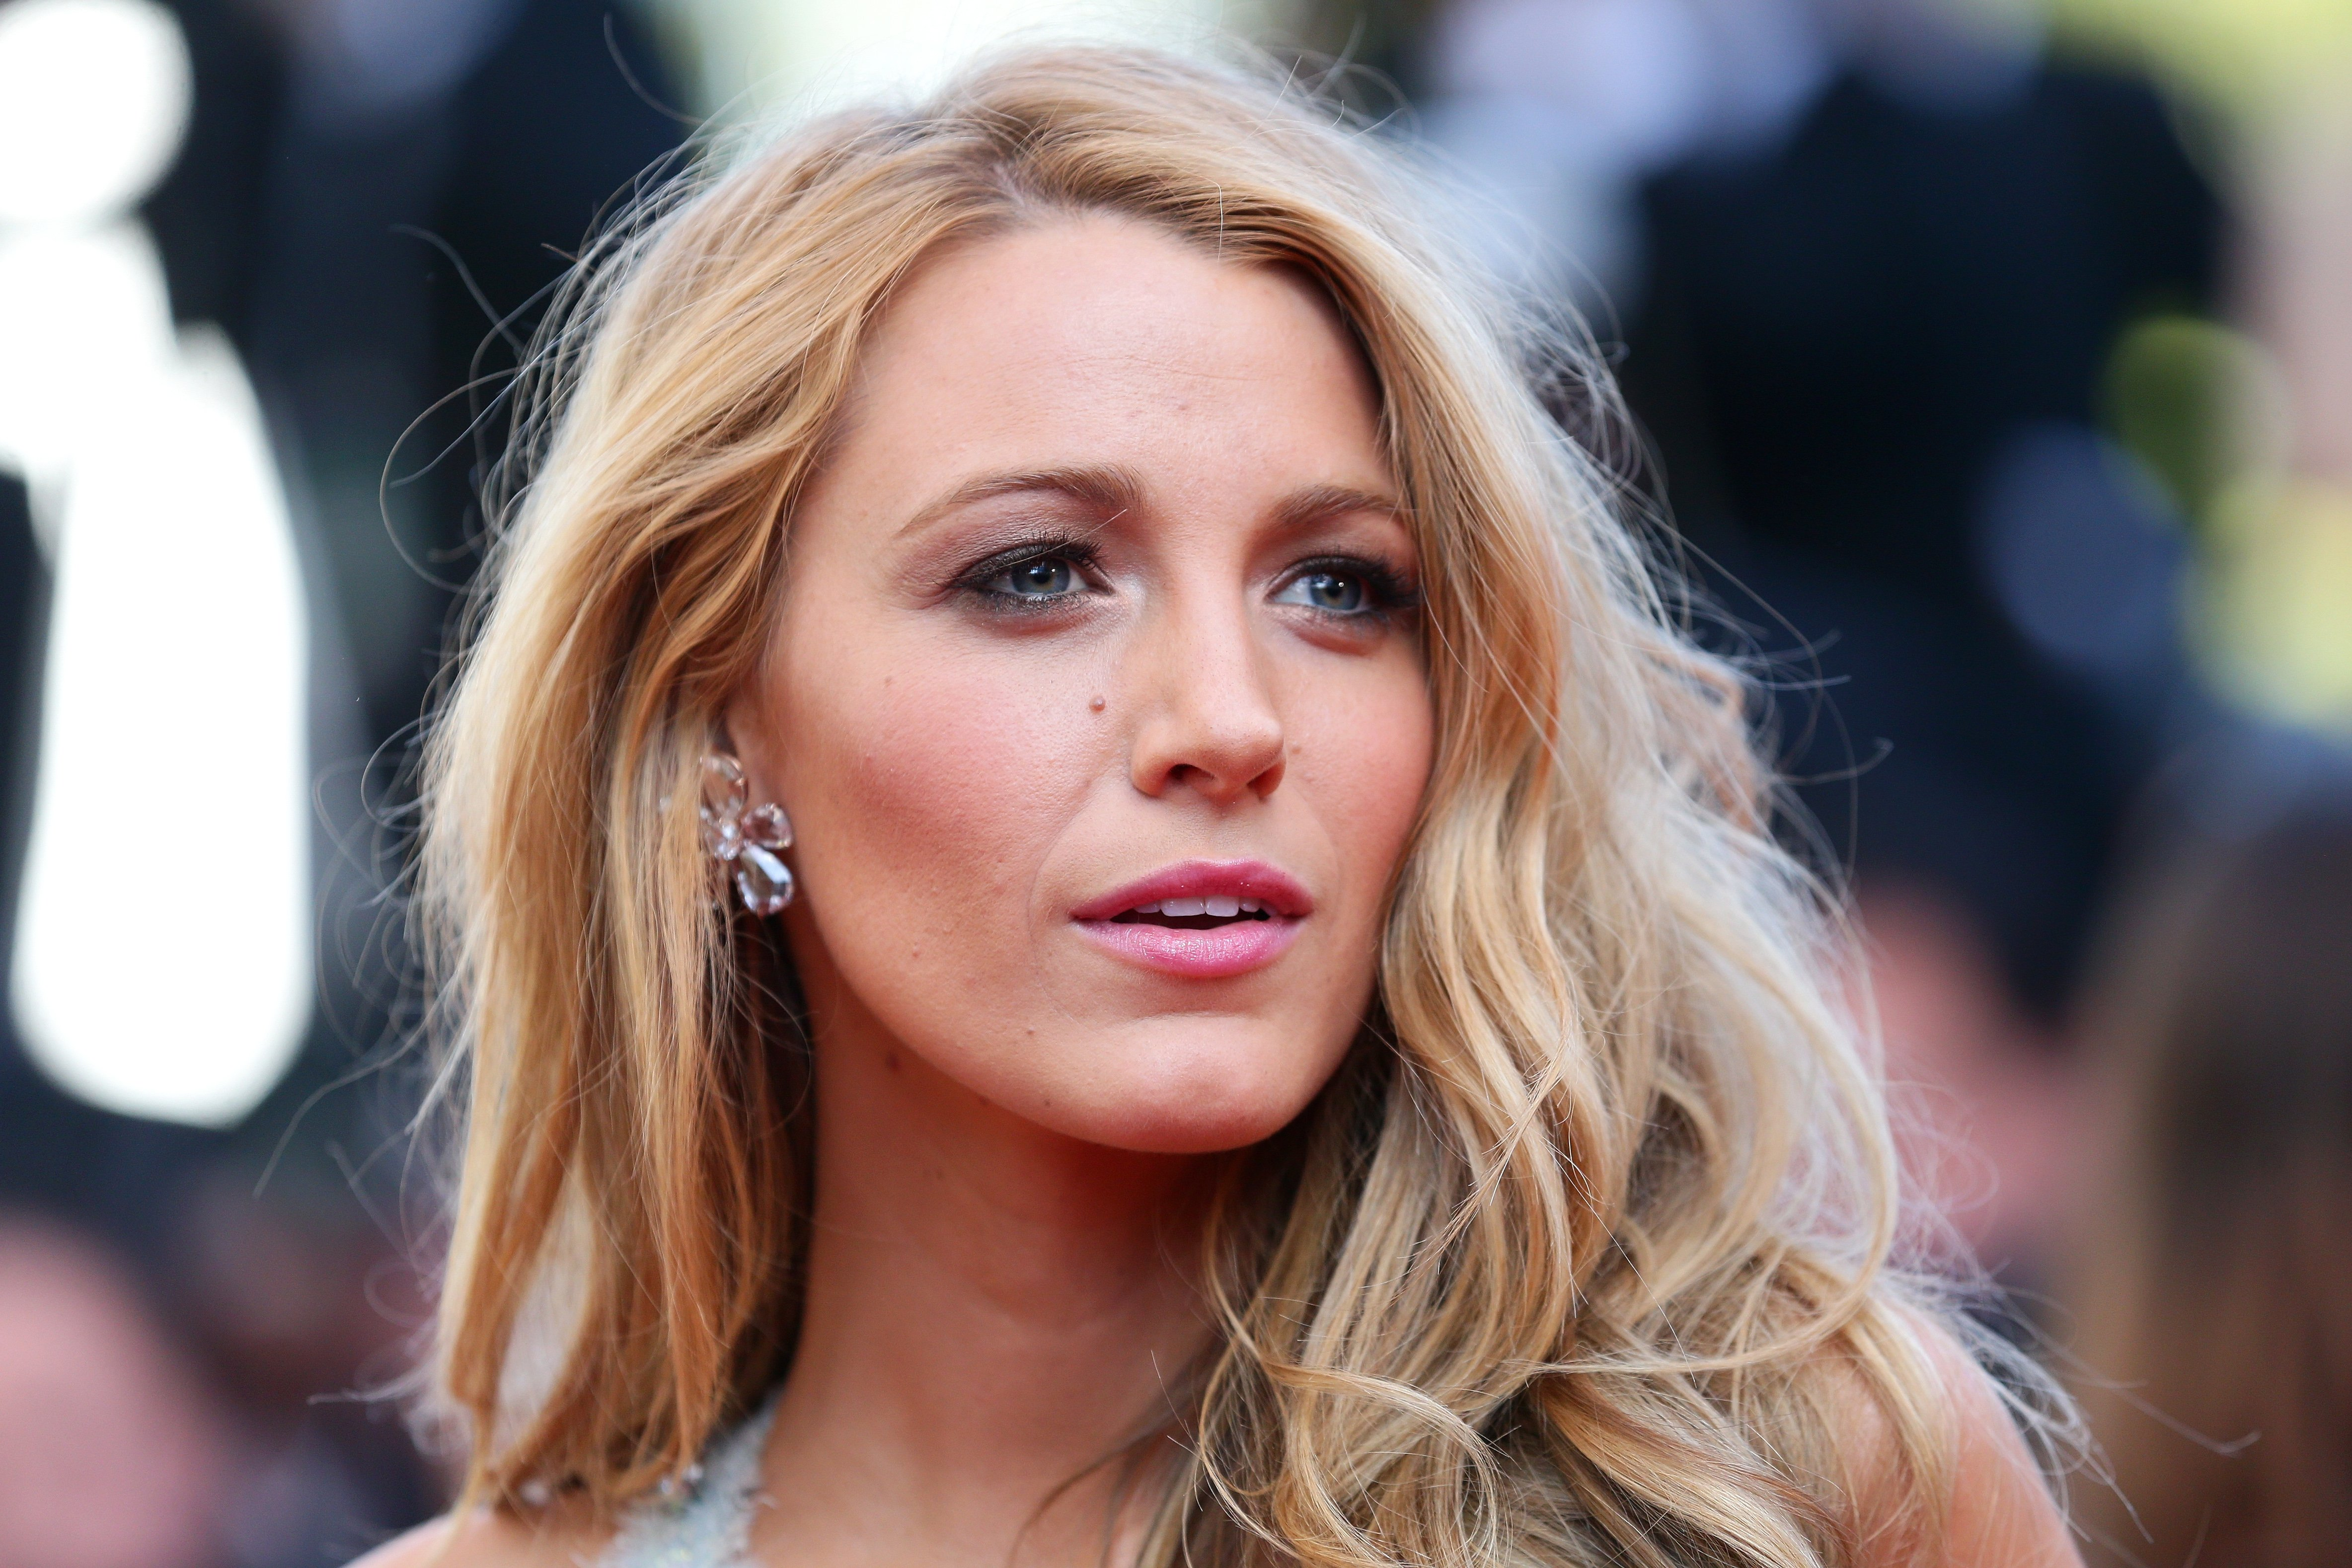 """Actress Blake Lively attends the """"Mr Turner"""" premiere during the 67th Annual Cannes Film Festival on May 15, 2014 in Cannes, France   Photo: Getty Images"""